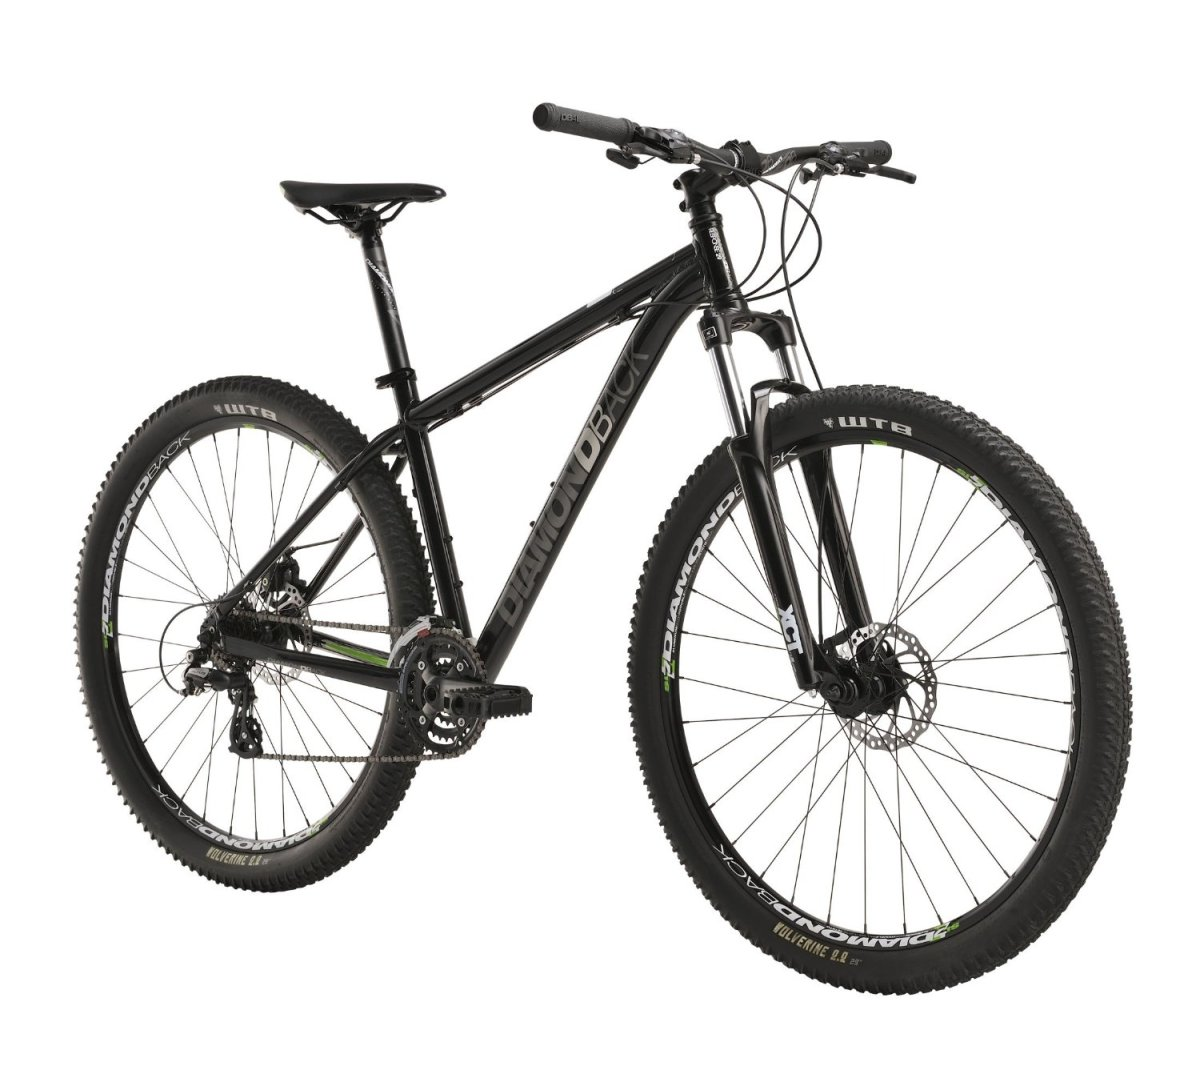 Diamondback Response Mountain Bike with 29-Inch Wheels